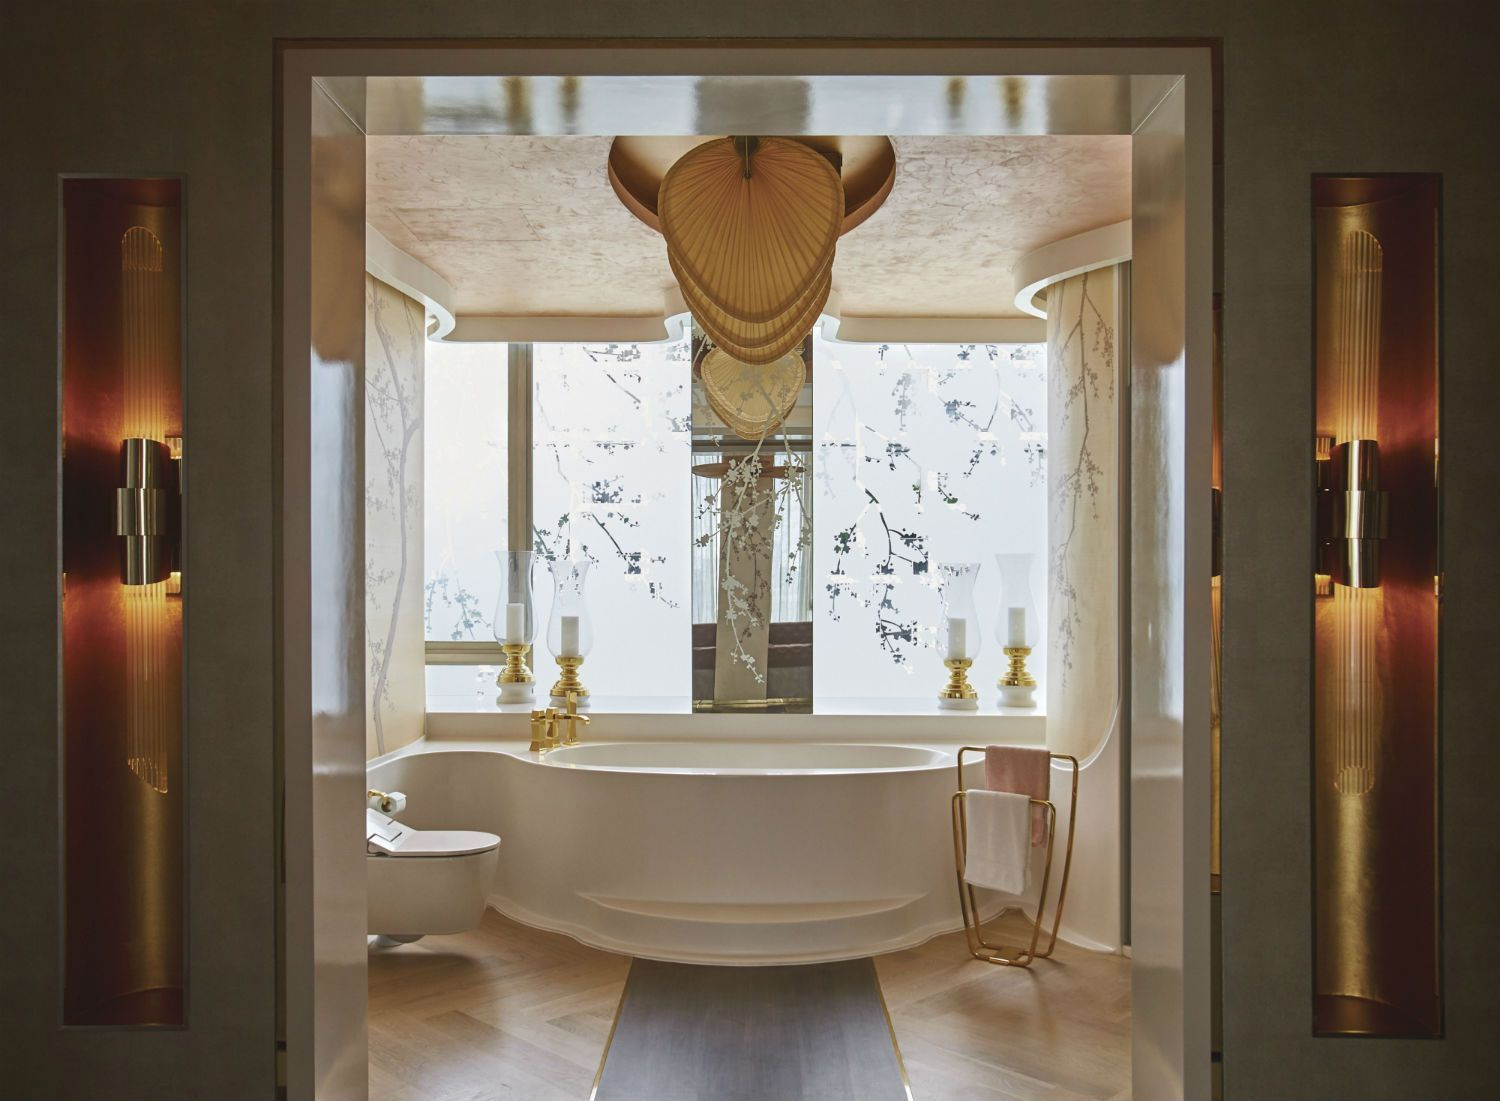 A bathroom crafted by Design Intervention features ample use of gold accents and ample use of ambient lighting